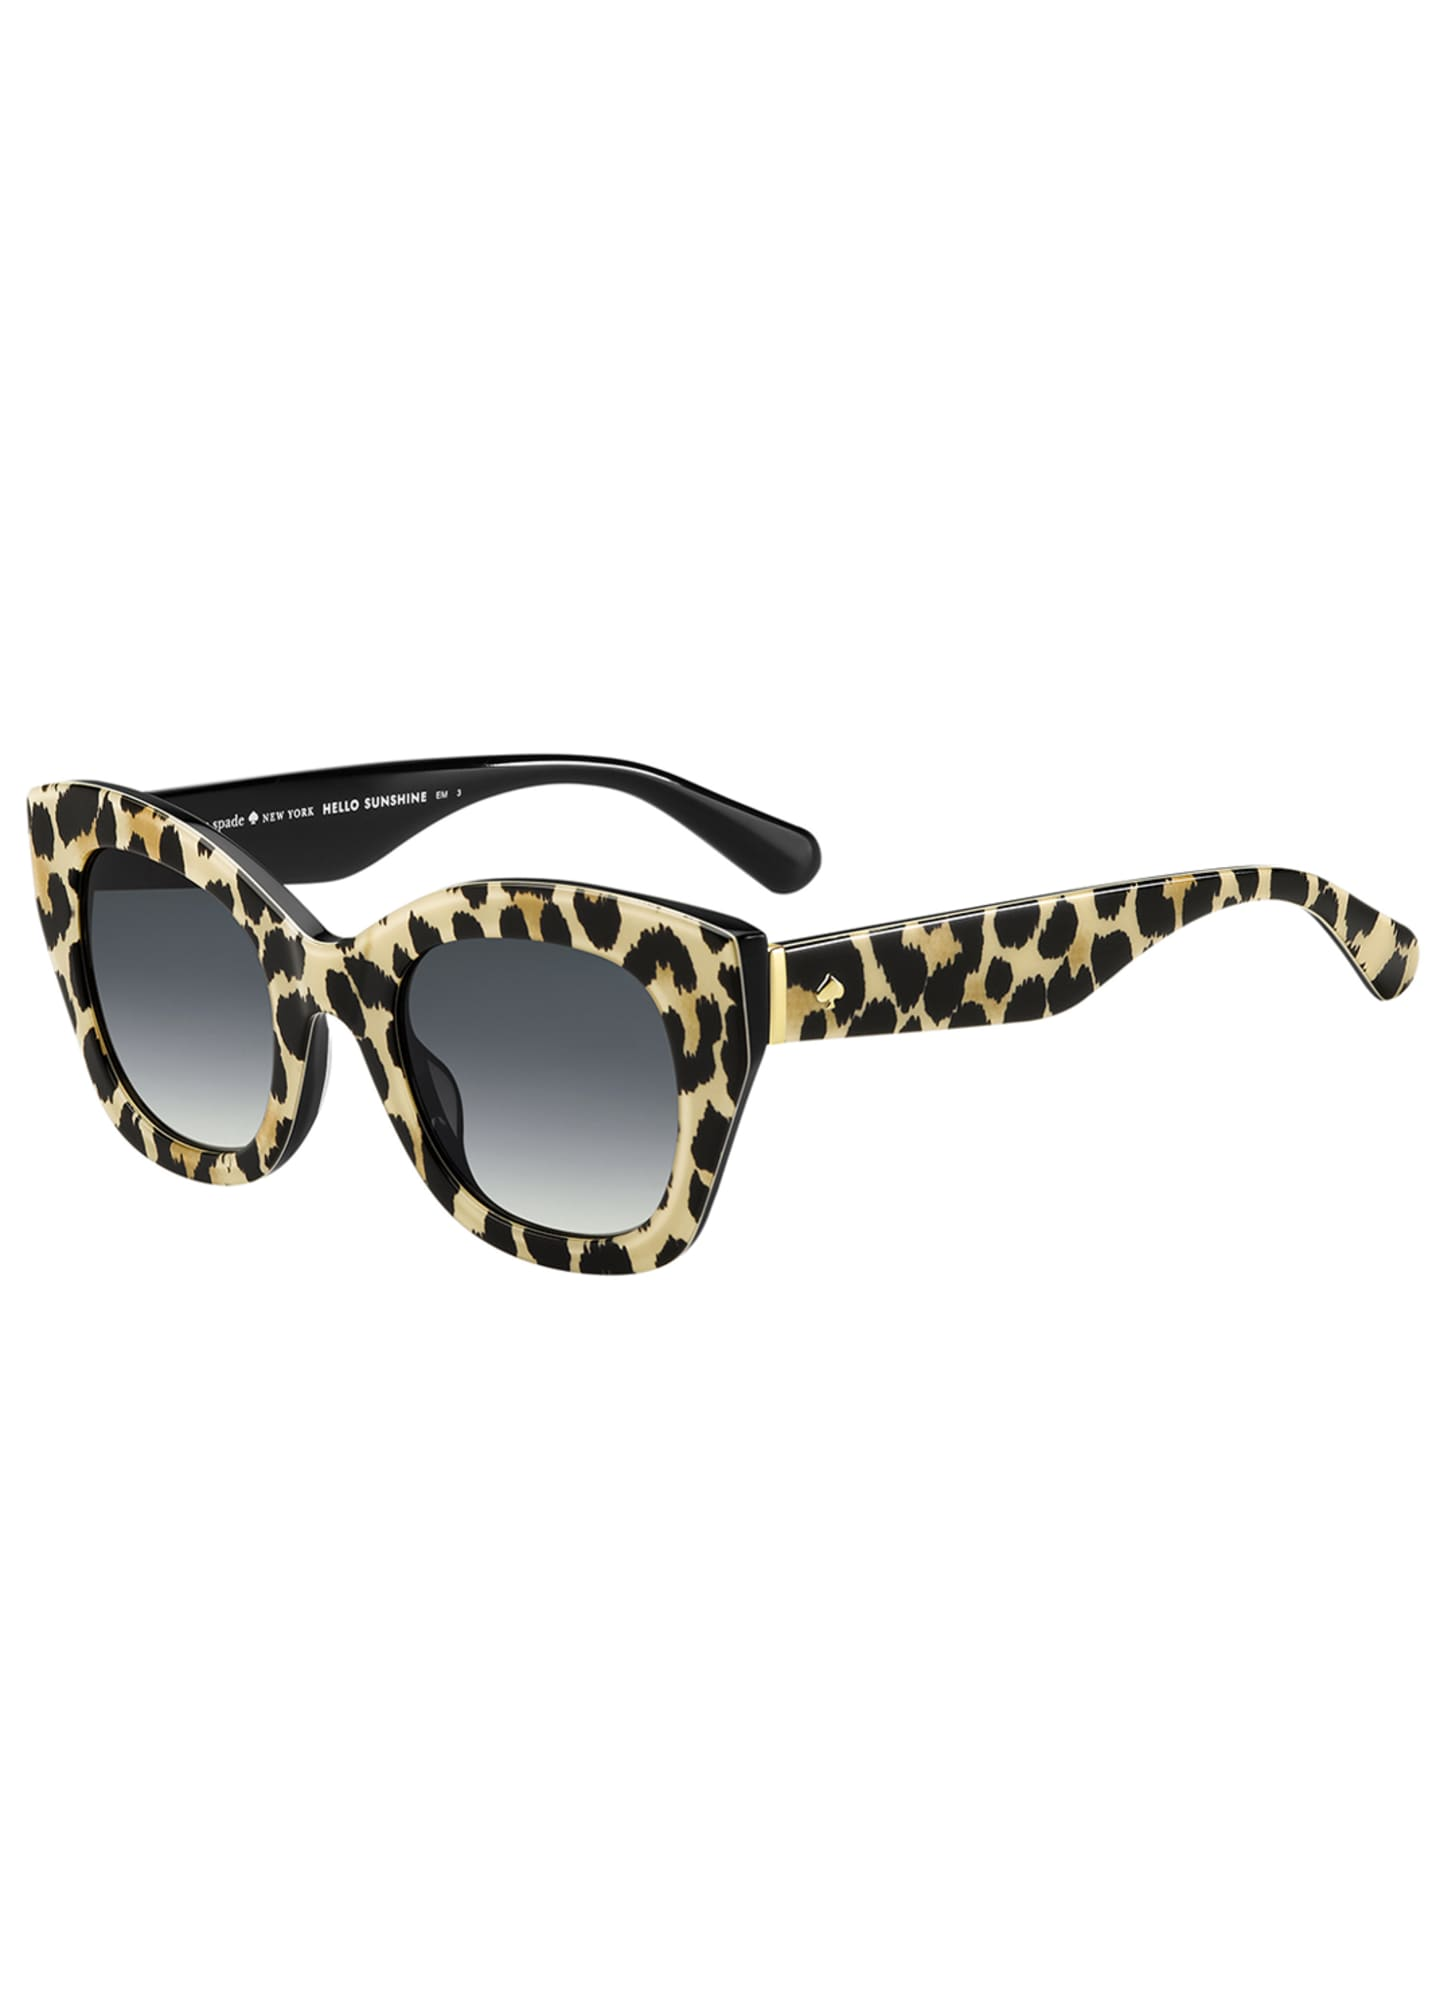 kate spade new york acetate cat-eye sunglasses